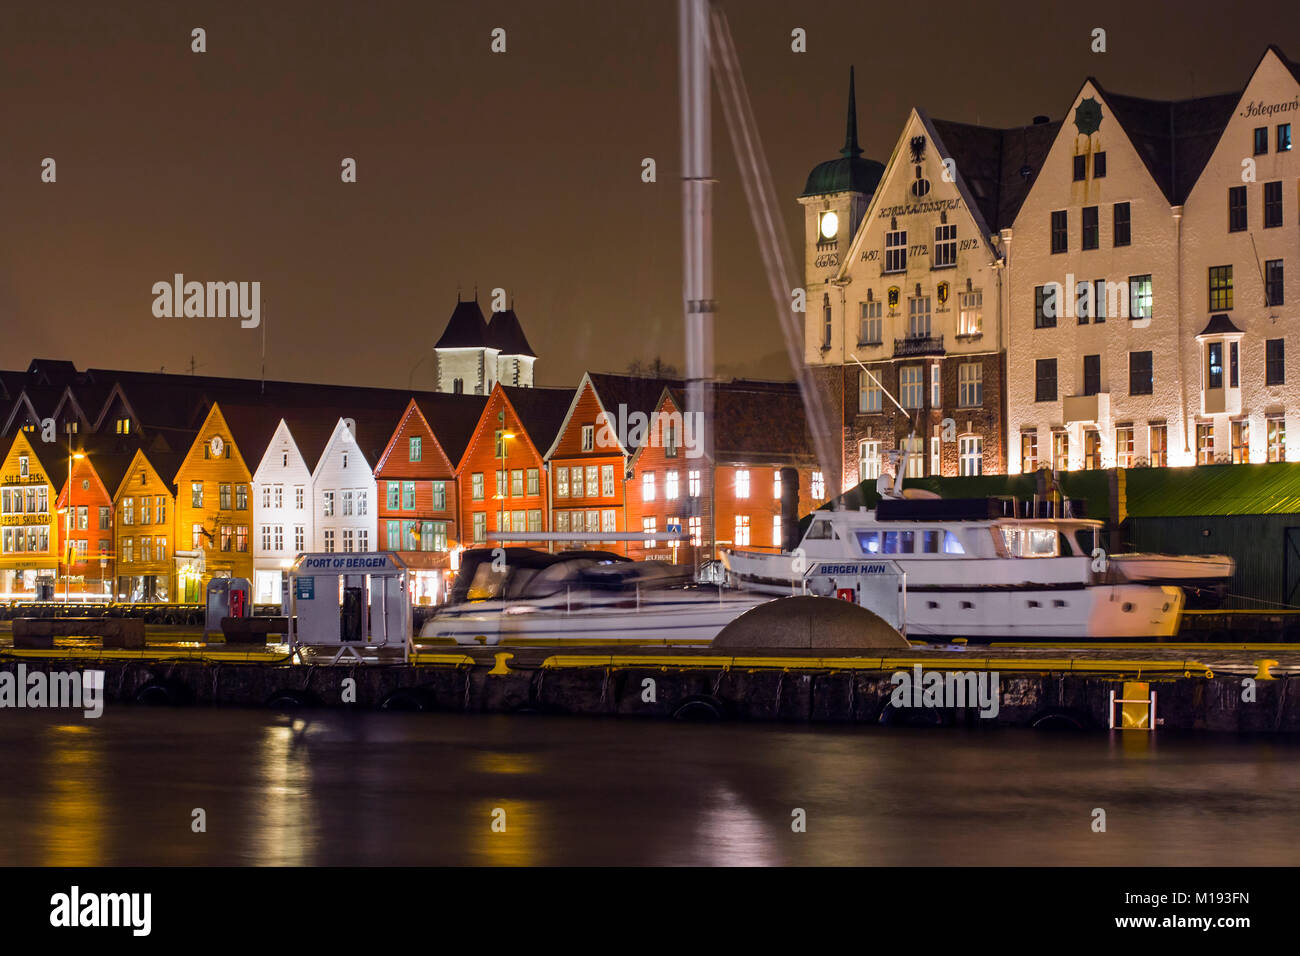 Historic Hanseatic wooden waterfront commercial buildings of World Heritage listed Bryggen (the dock) at night. - Stock Image